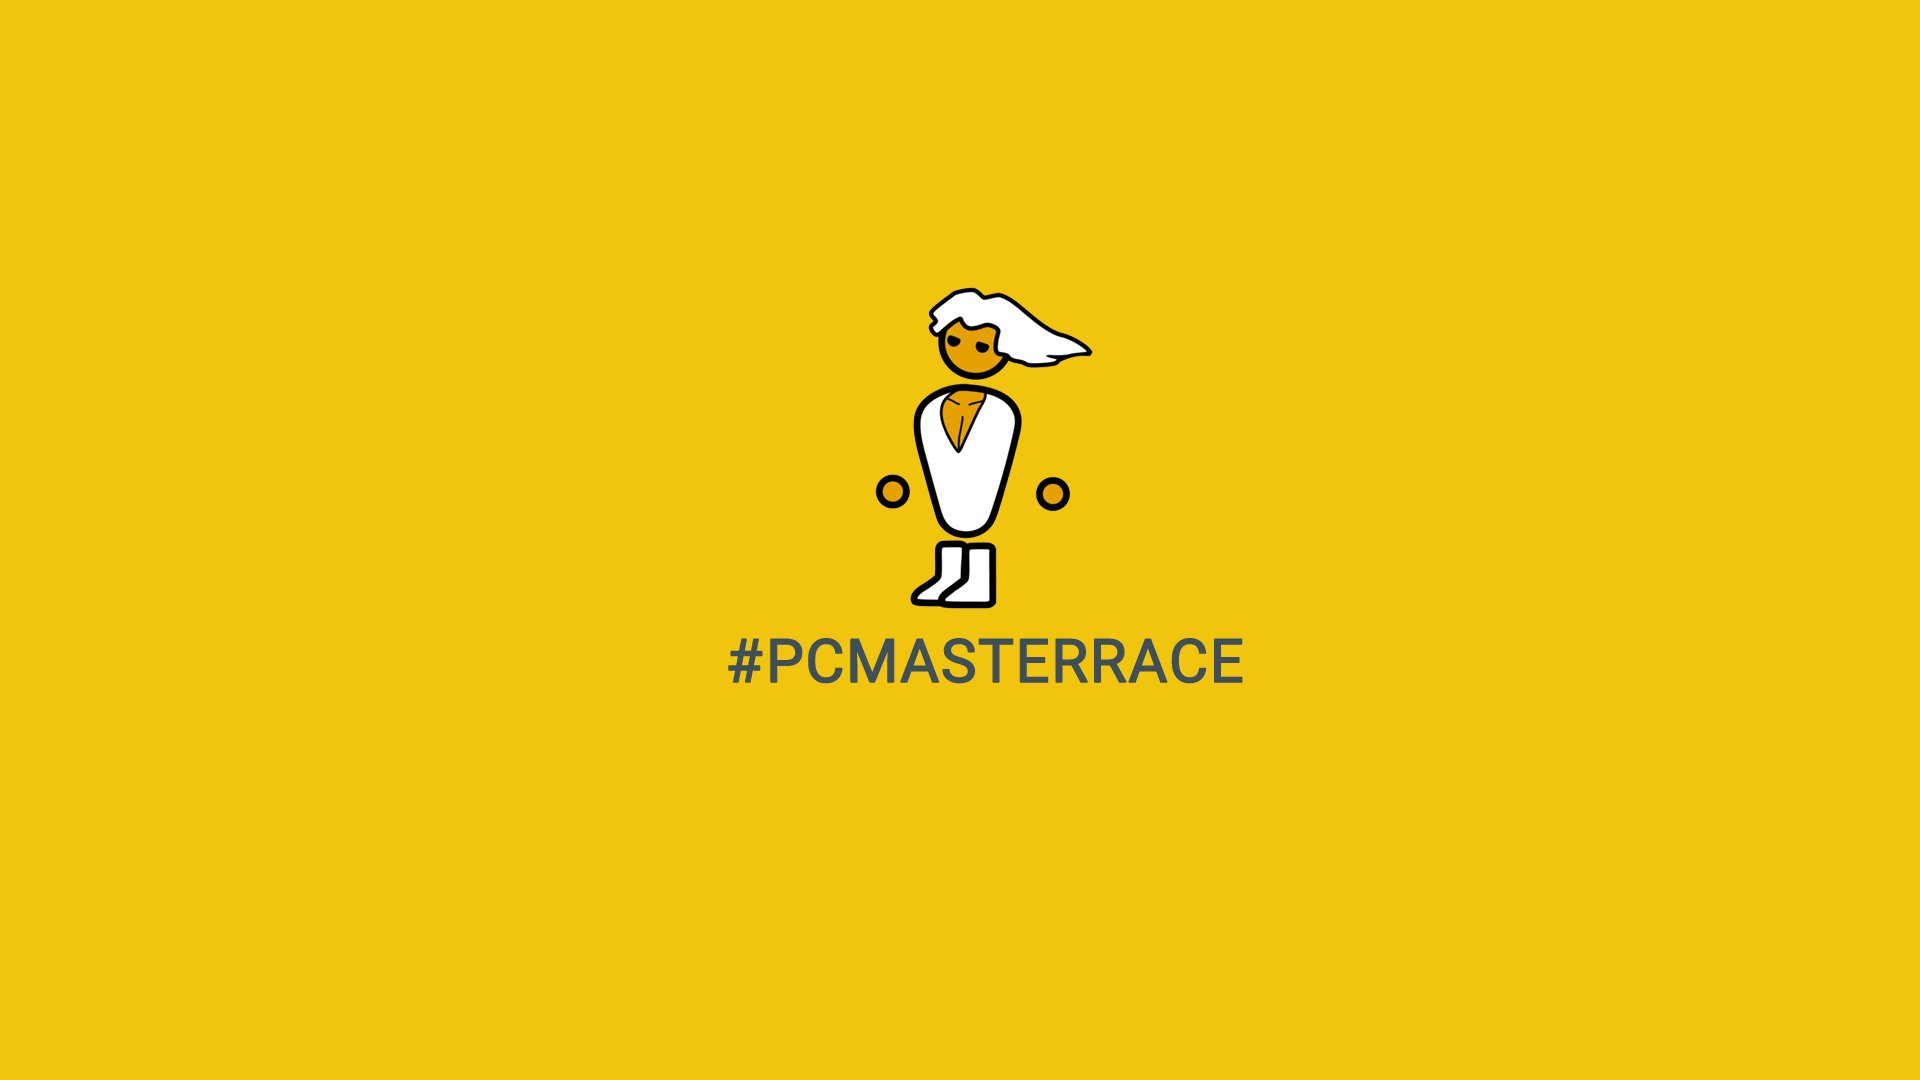 Pc Master Race Full Hd Wallpaper And Background Image: Simple PCMasterRace HD Wallpaper